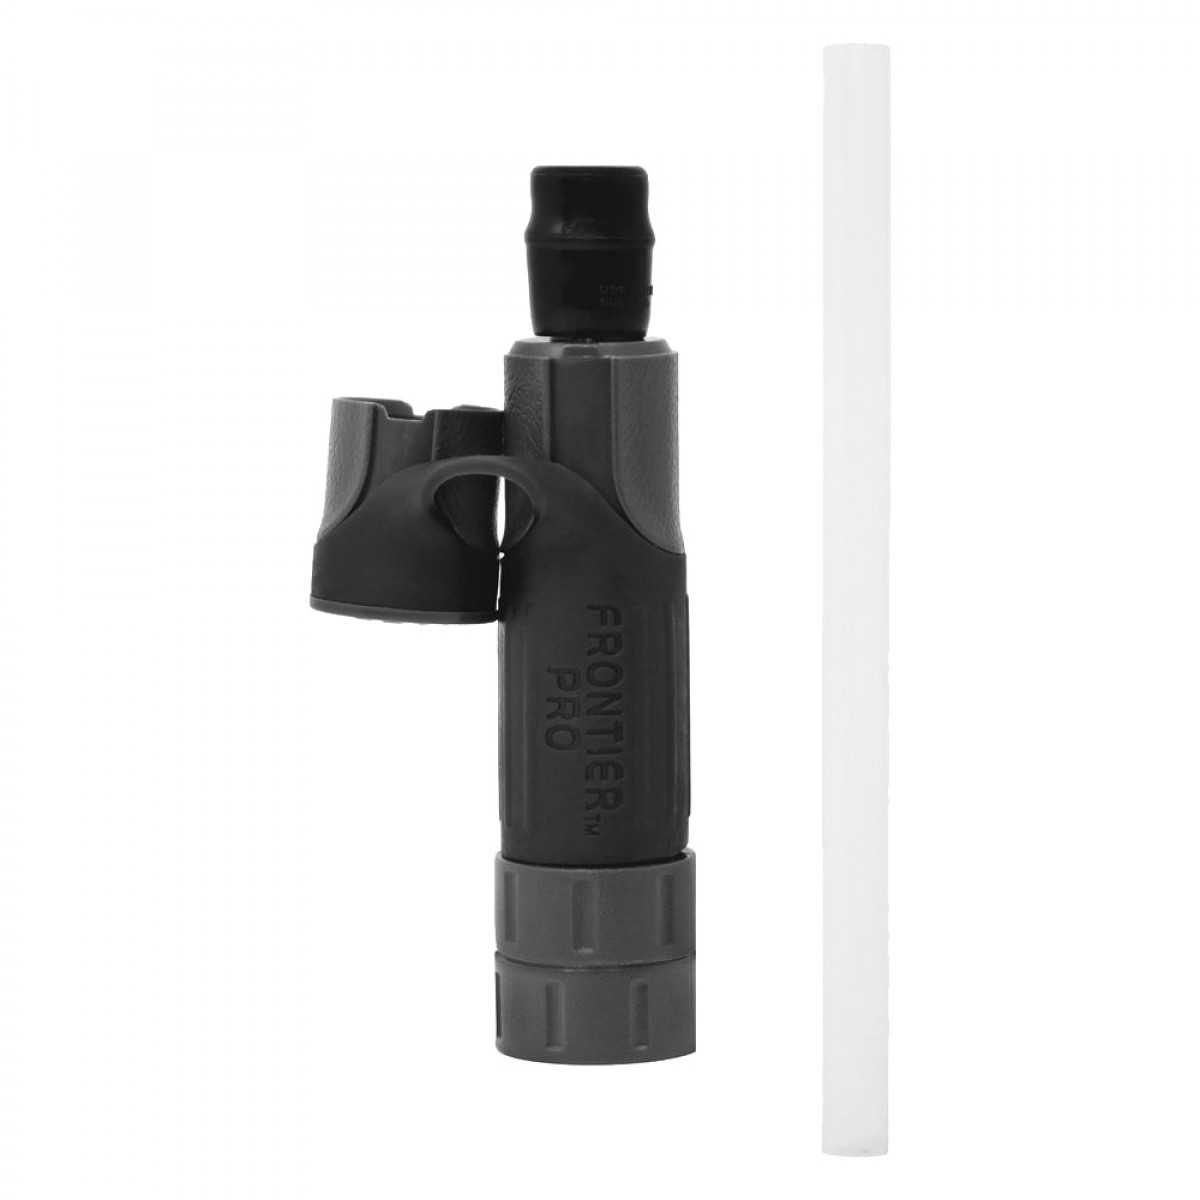 portable water filter system. 67106 Aquamira Frontier Pro Portable Filter System (Military) Water